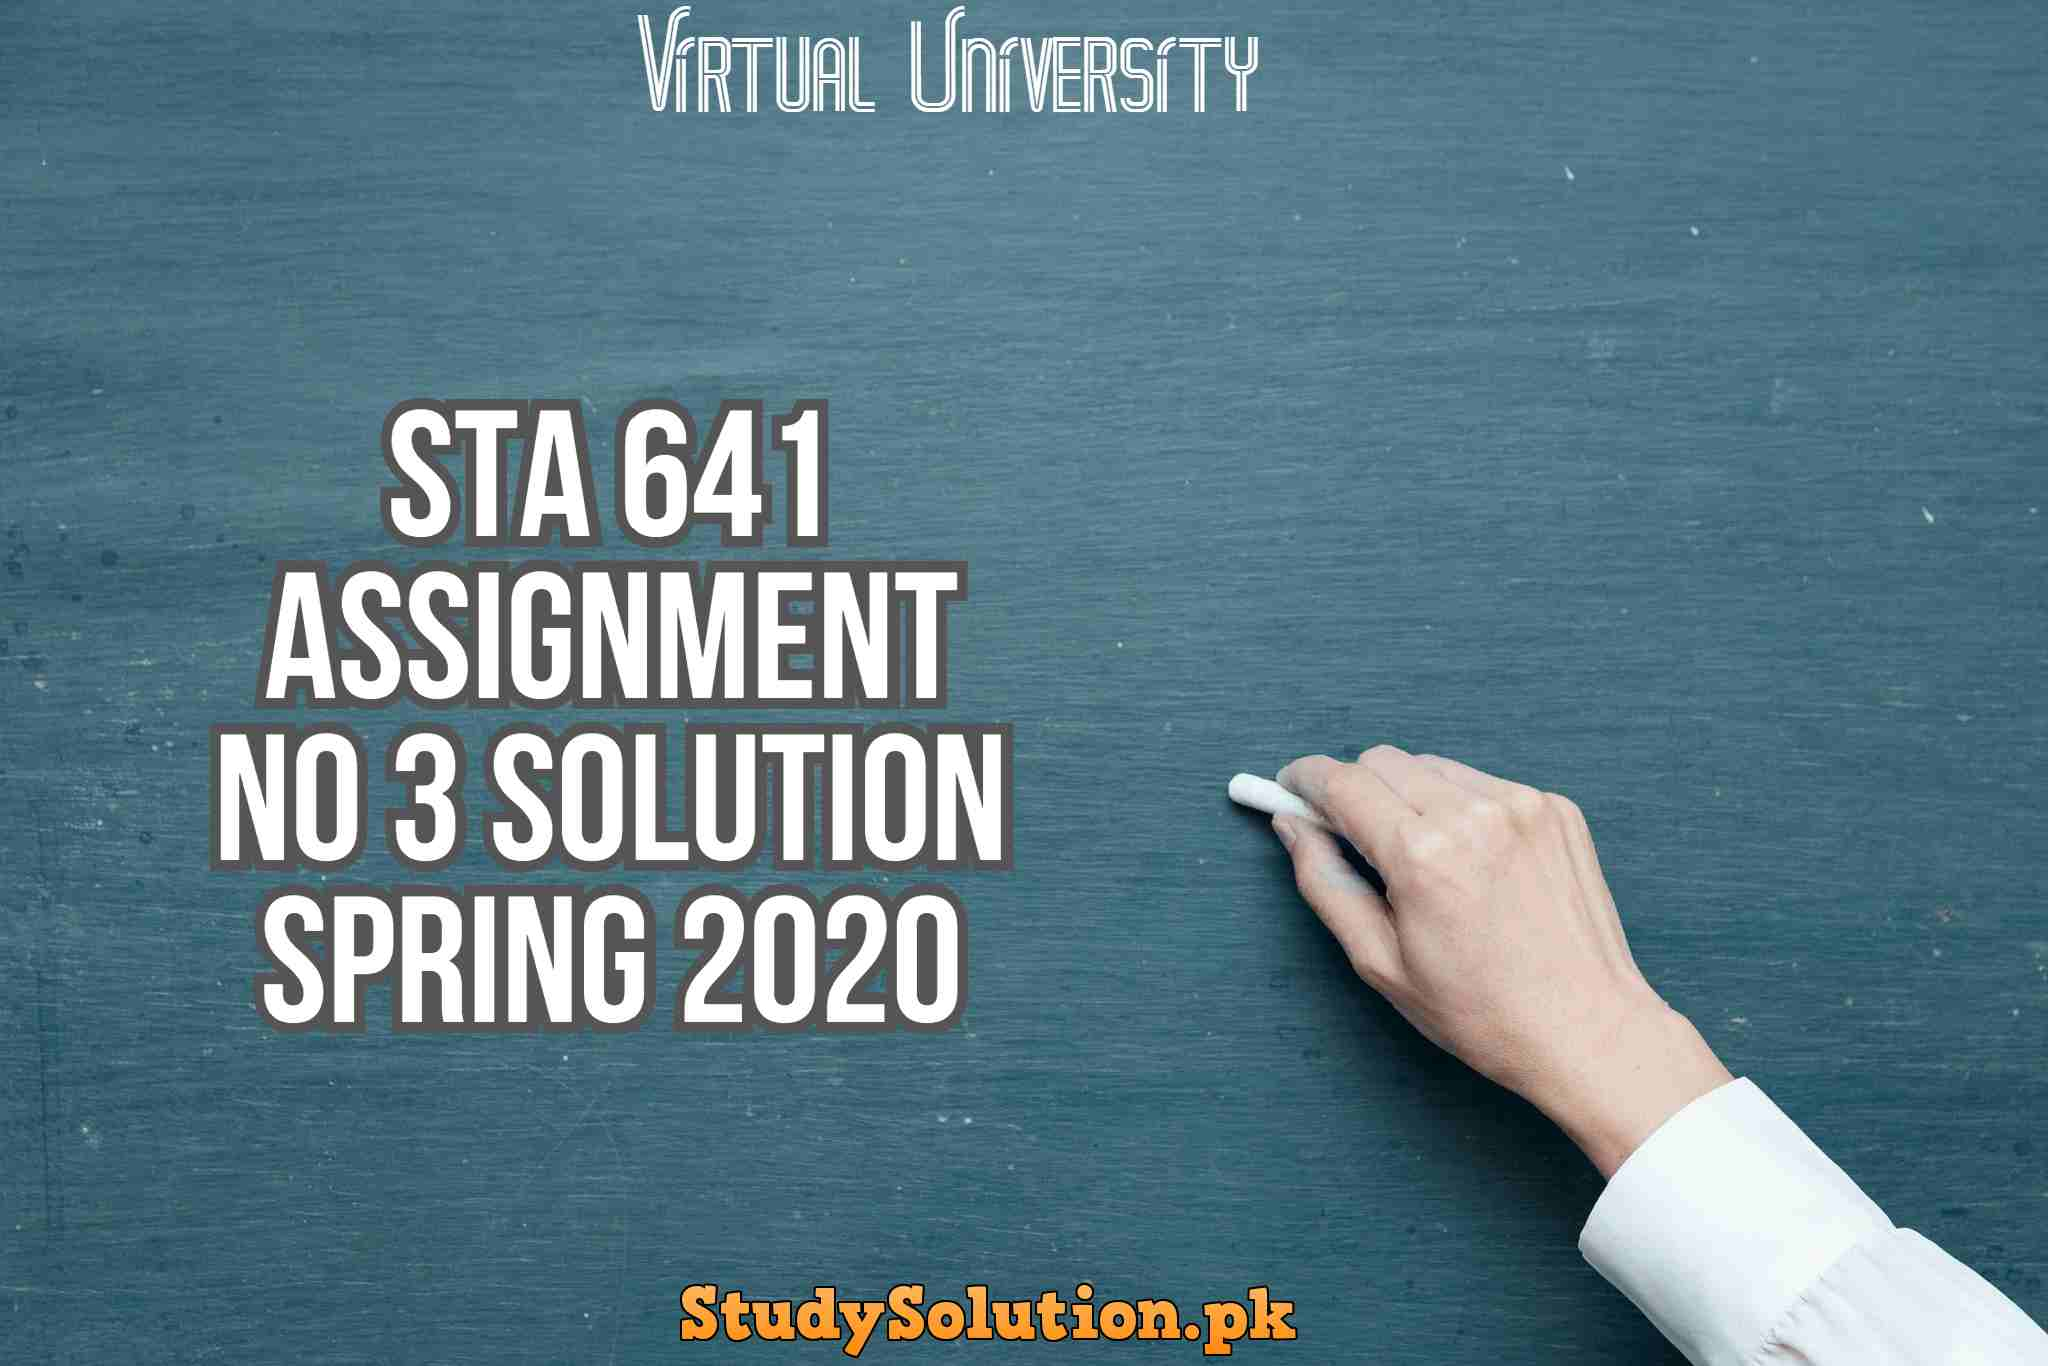 STA 641 Assignment No 3 Solution Spring 2020